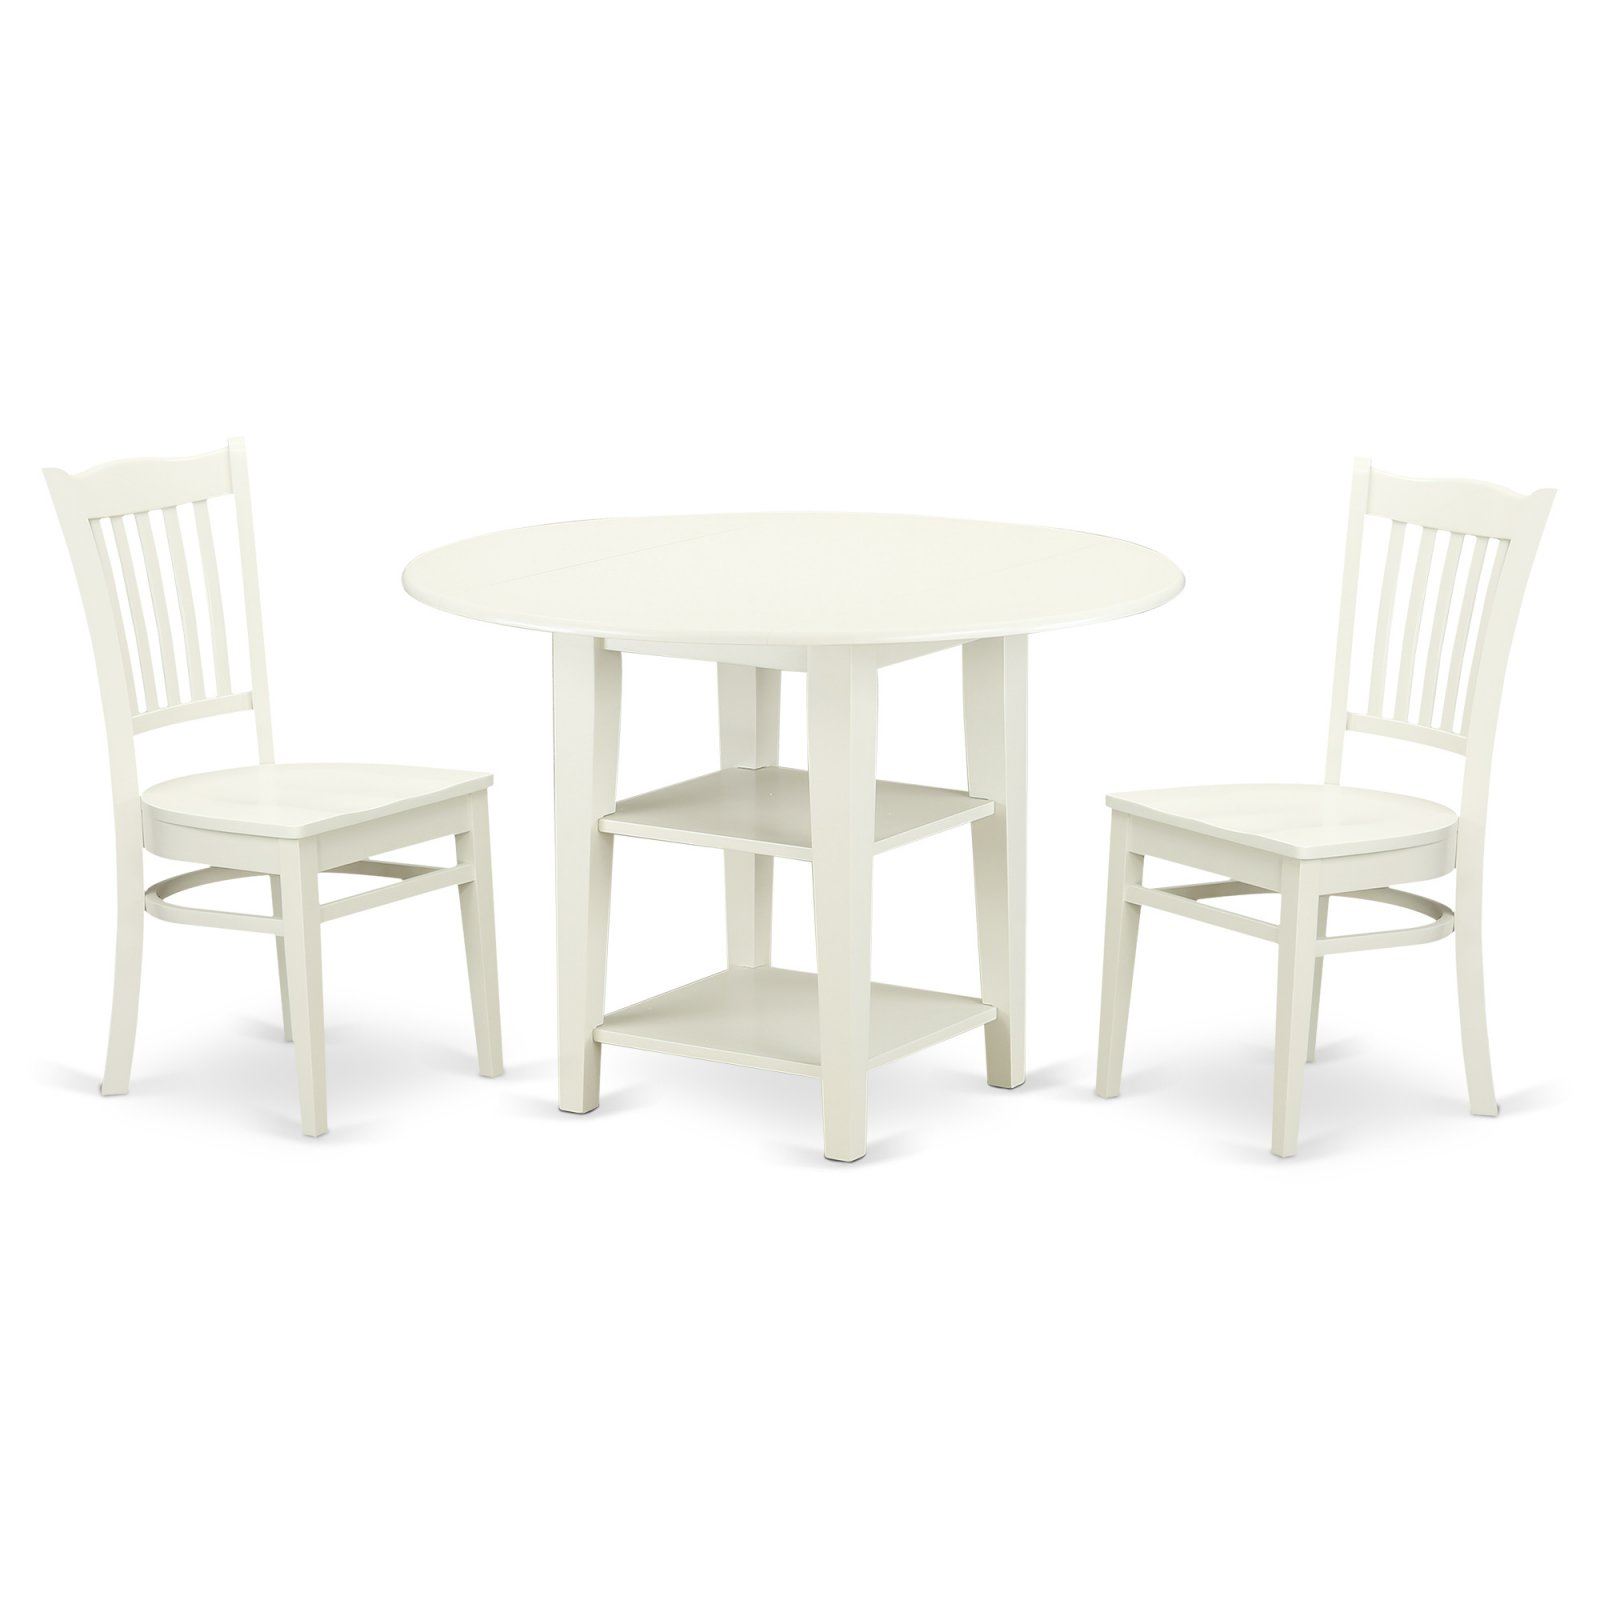 East West Furniture Sudbury 3 Piece Dual Drop Leaf Dining Table Set With Slat Back Chairs Linen White In 2019 Products